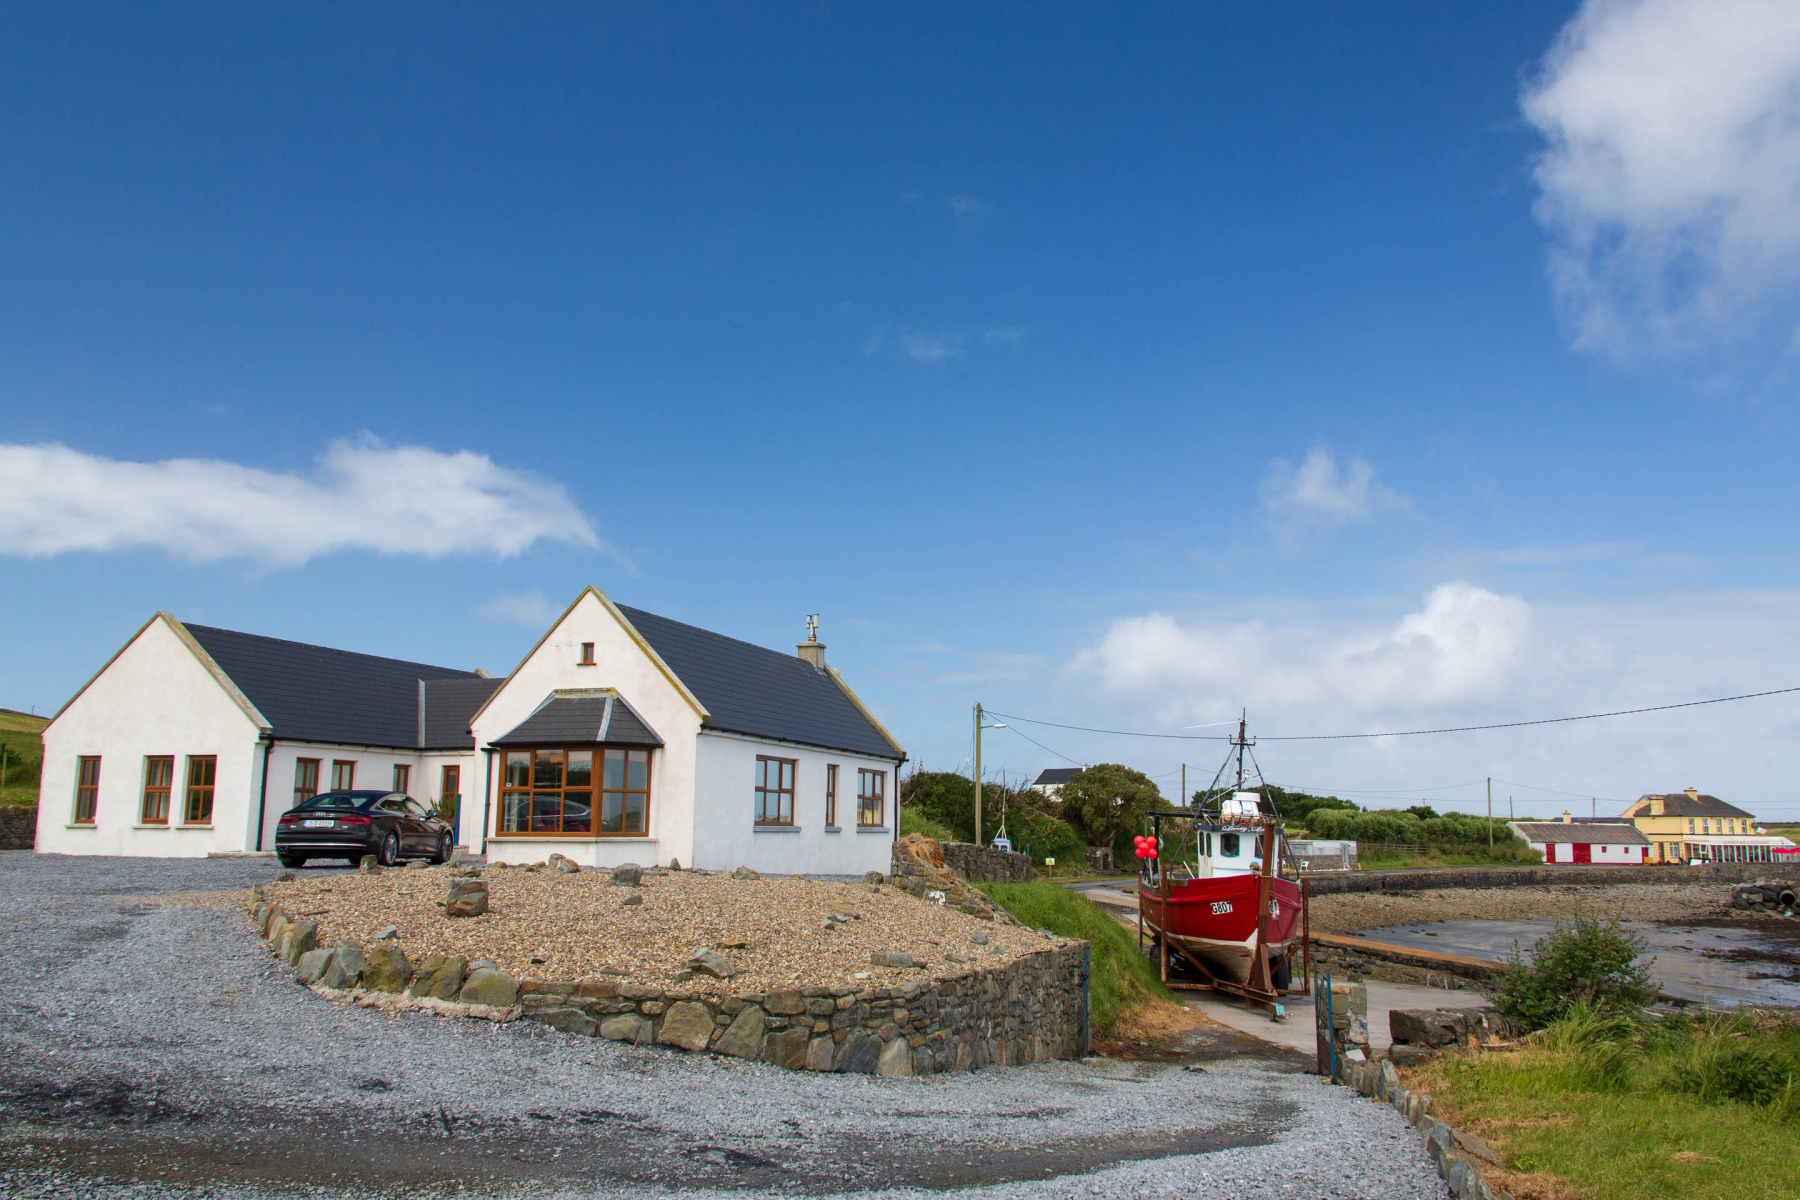 After the pampering of the Cliff House we drove to the Western part of Ireland and rented a small cottage by the Sea.